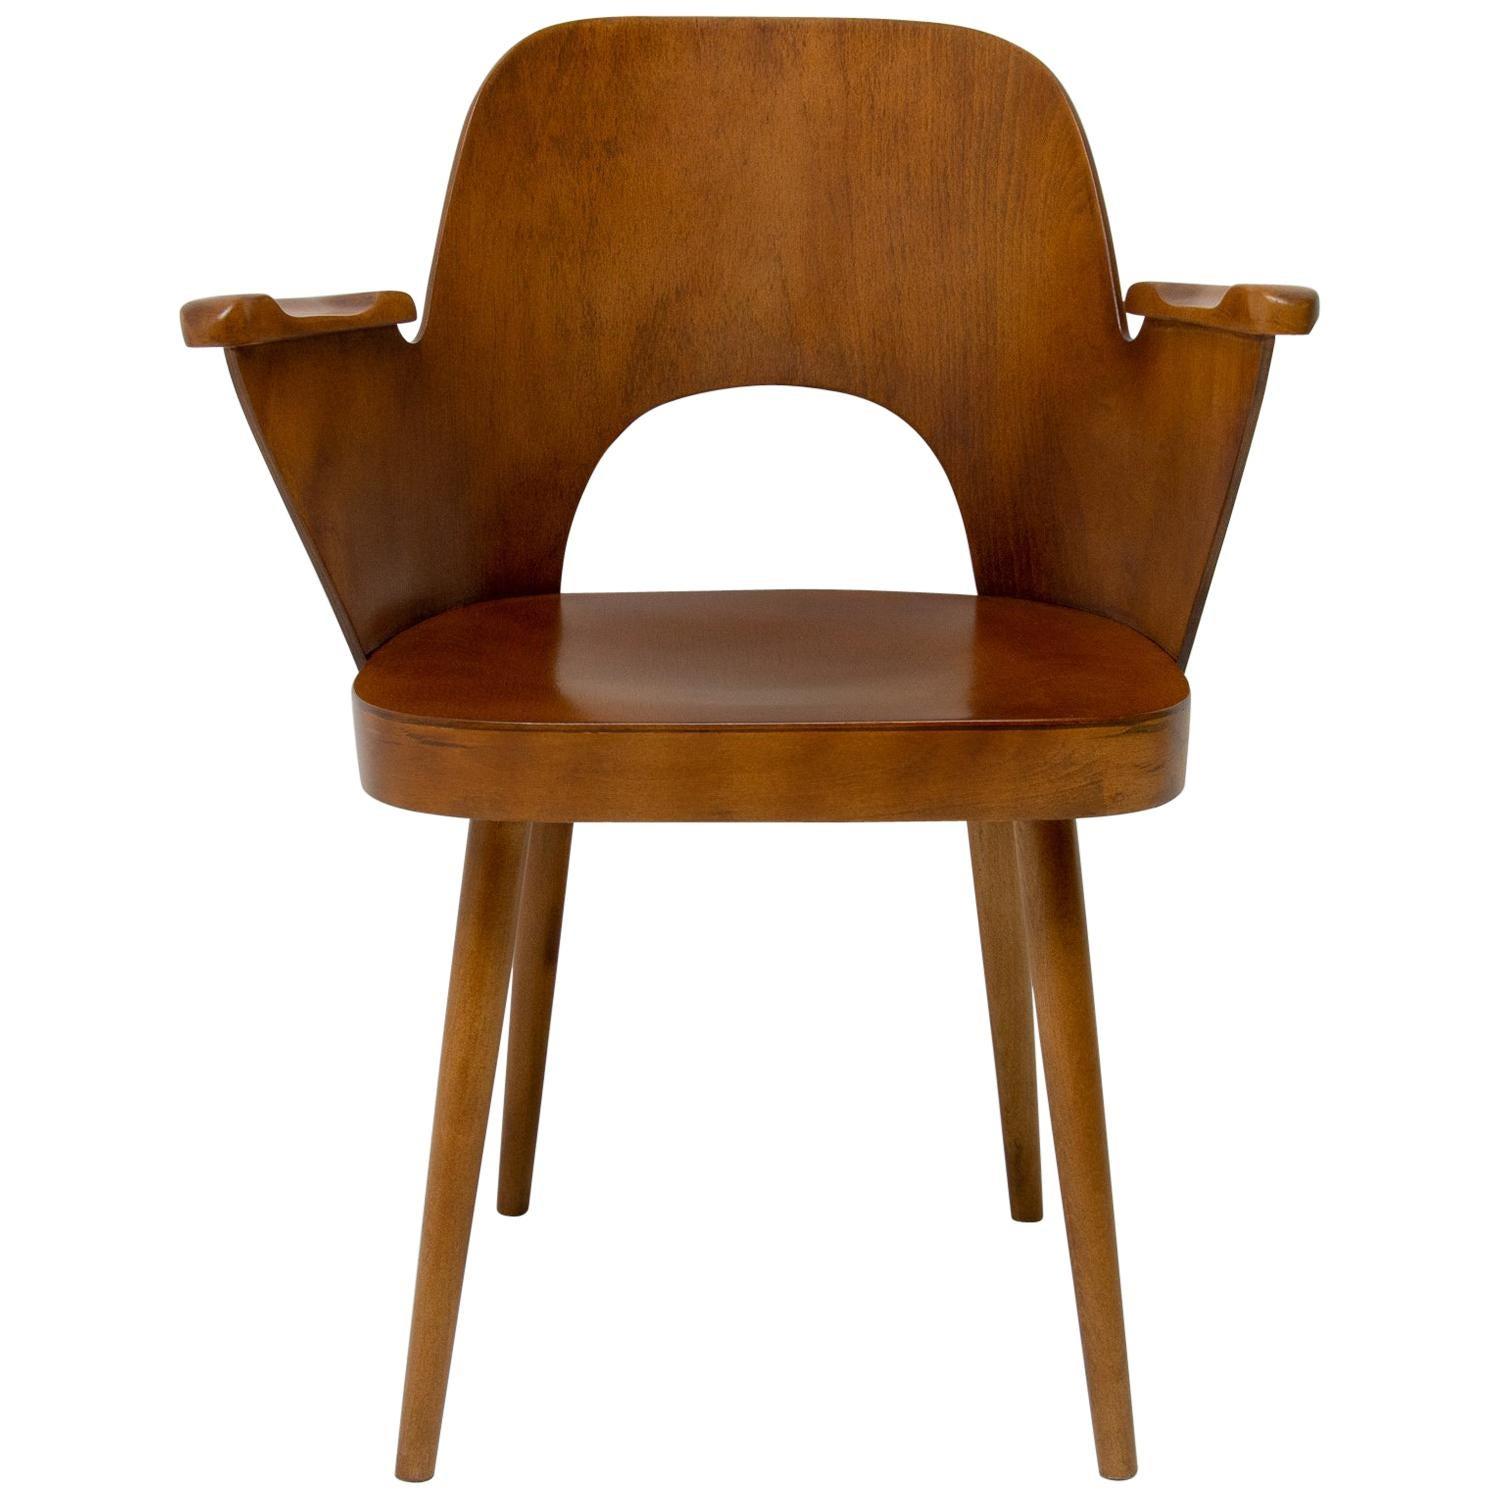 Bent Plywood Desk Armchair by Oswald Haerdtl 1960s For Sale  sc 1 st  1stDibs & Bent Plywood Desk Armchair by Oswald Haerdtl 1960s For Sale at 1stdibs